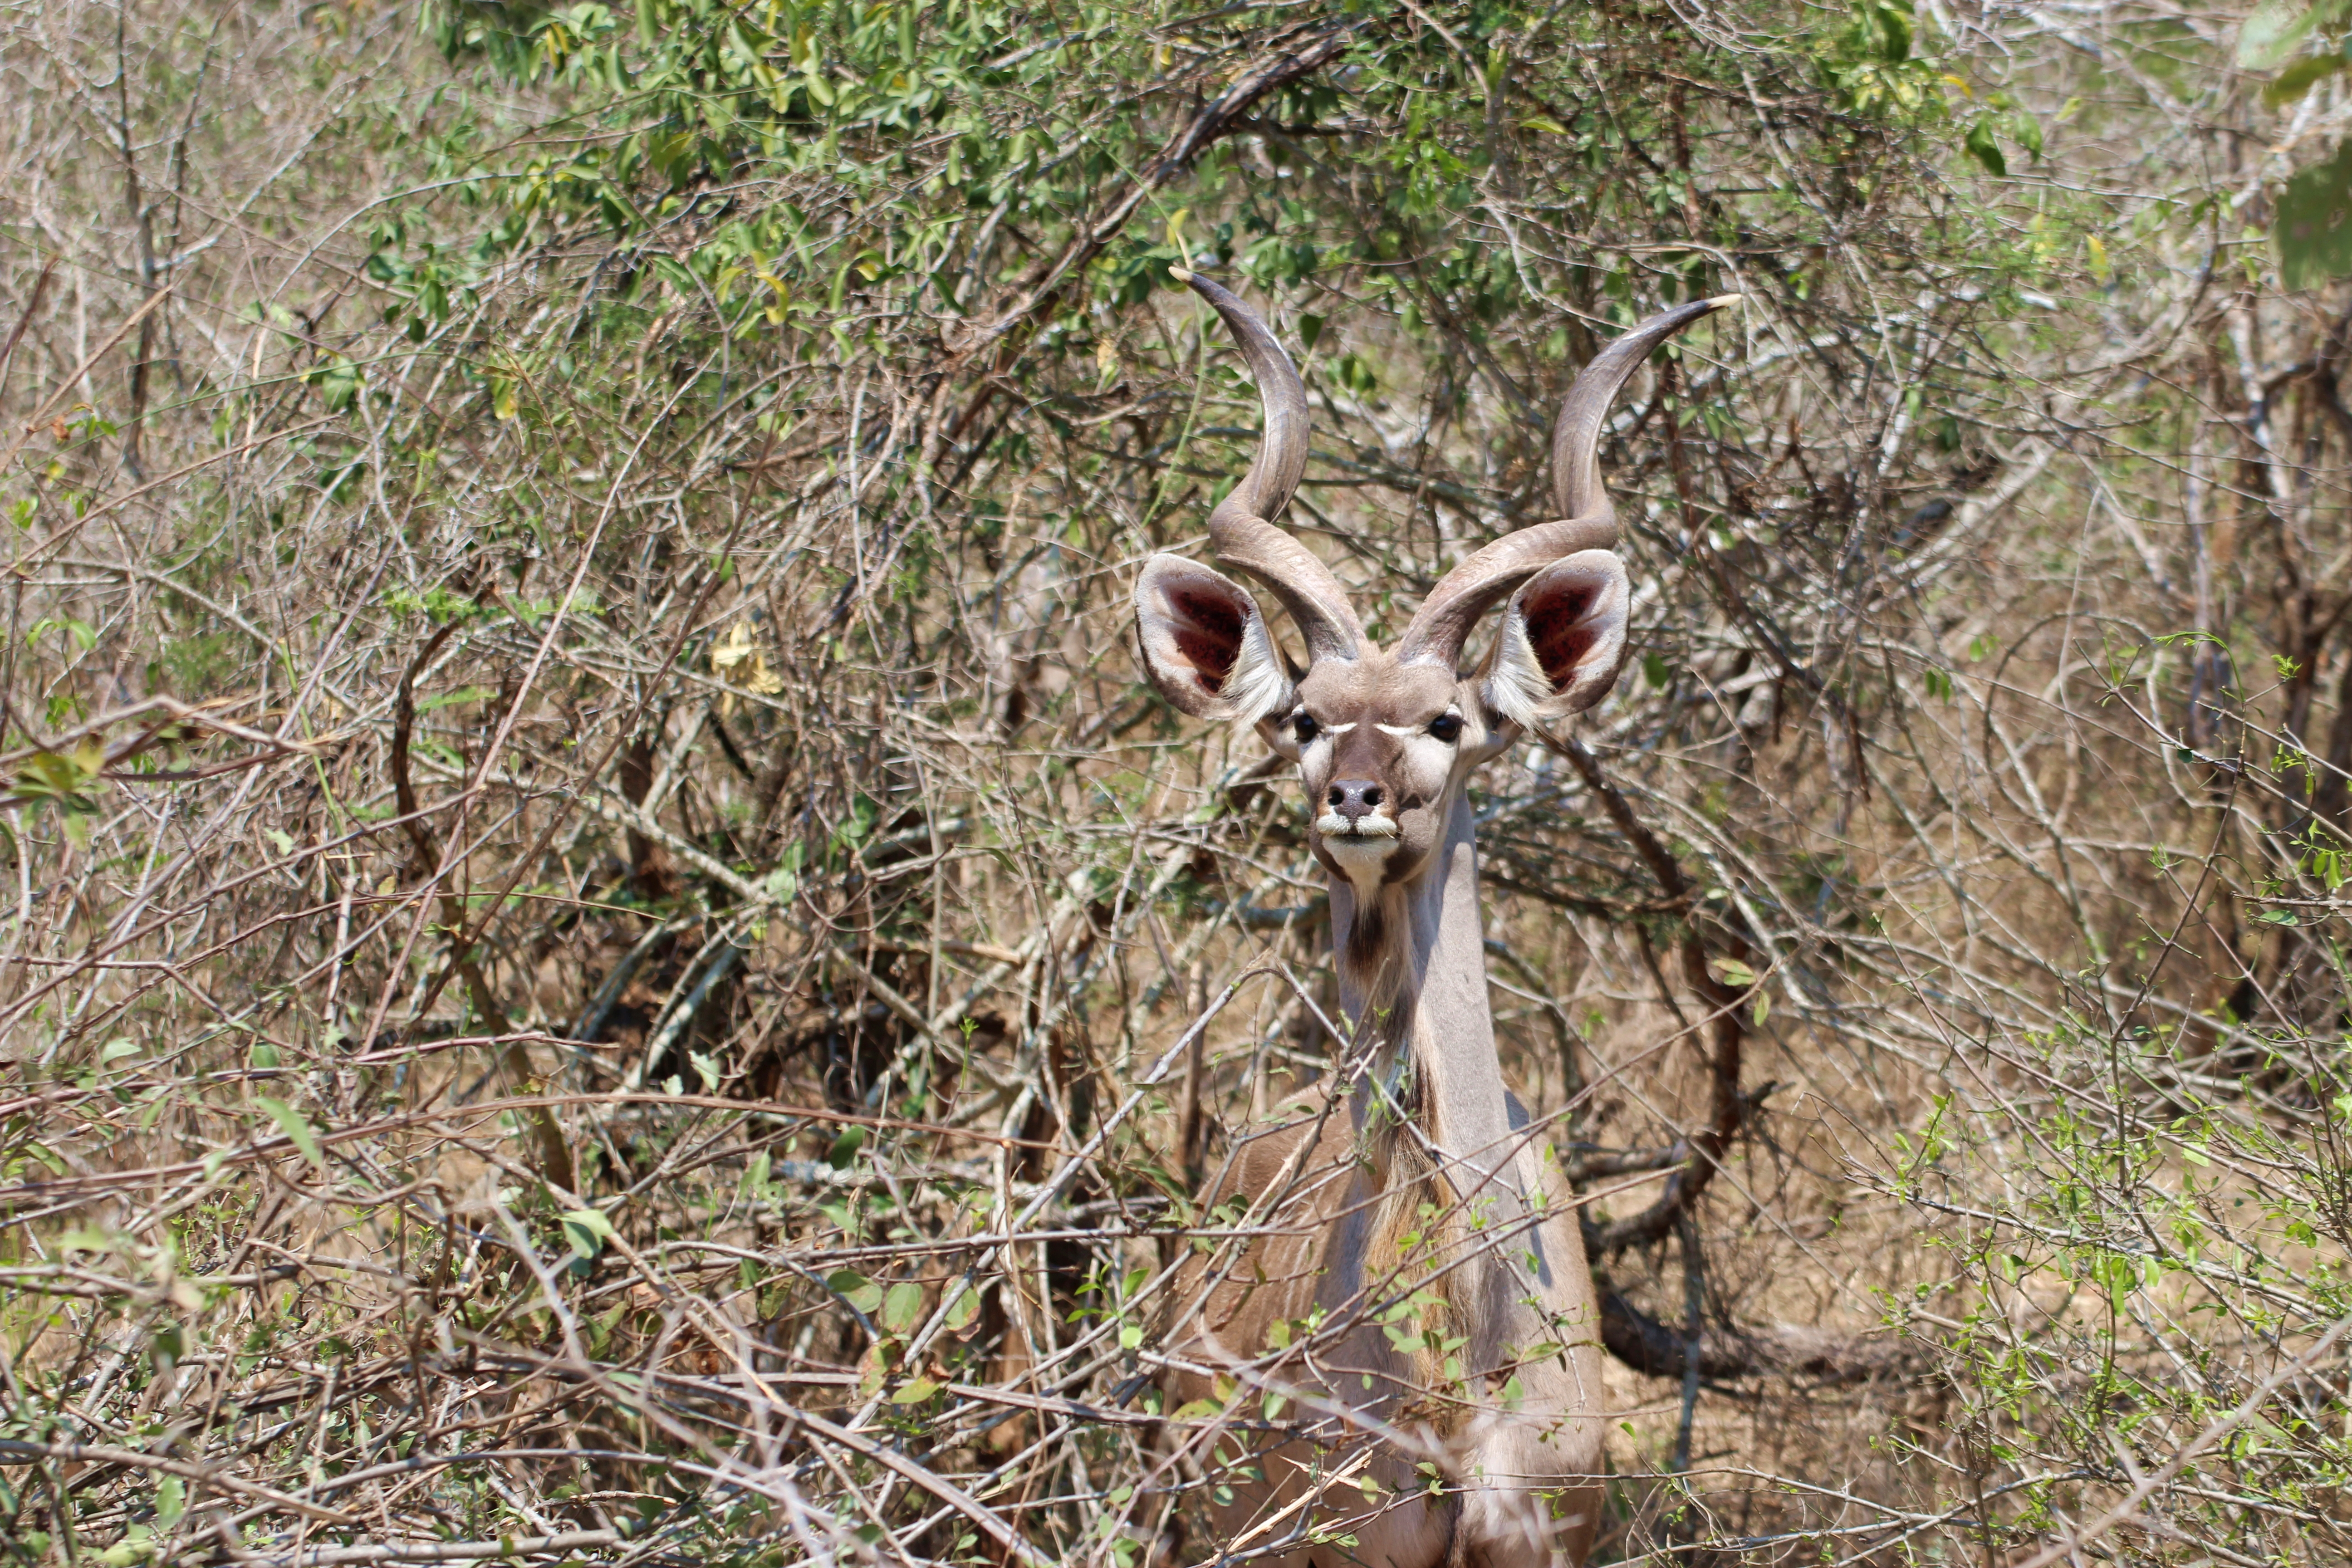 Kruger kudu in the trees